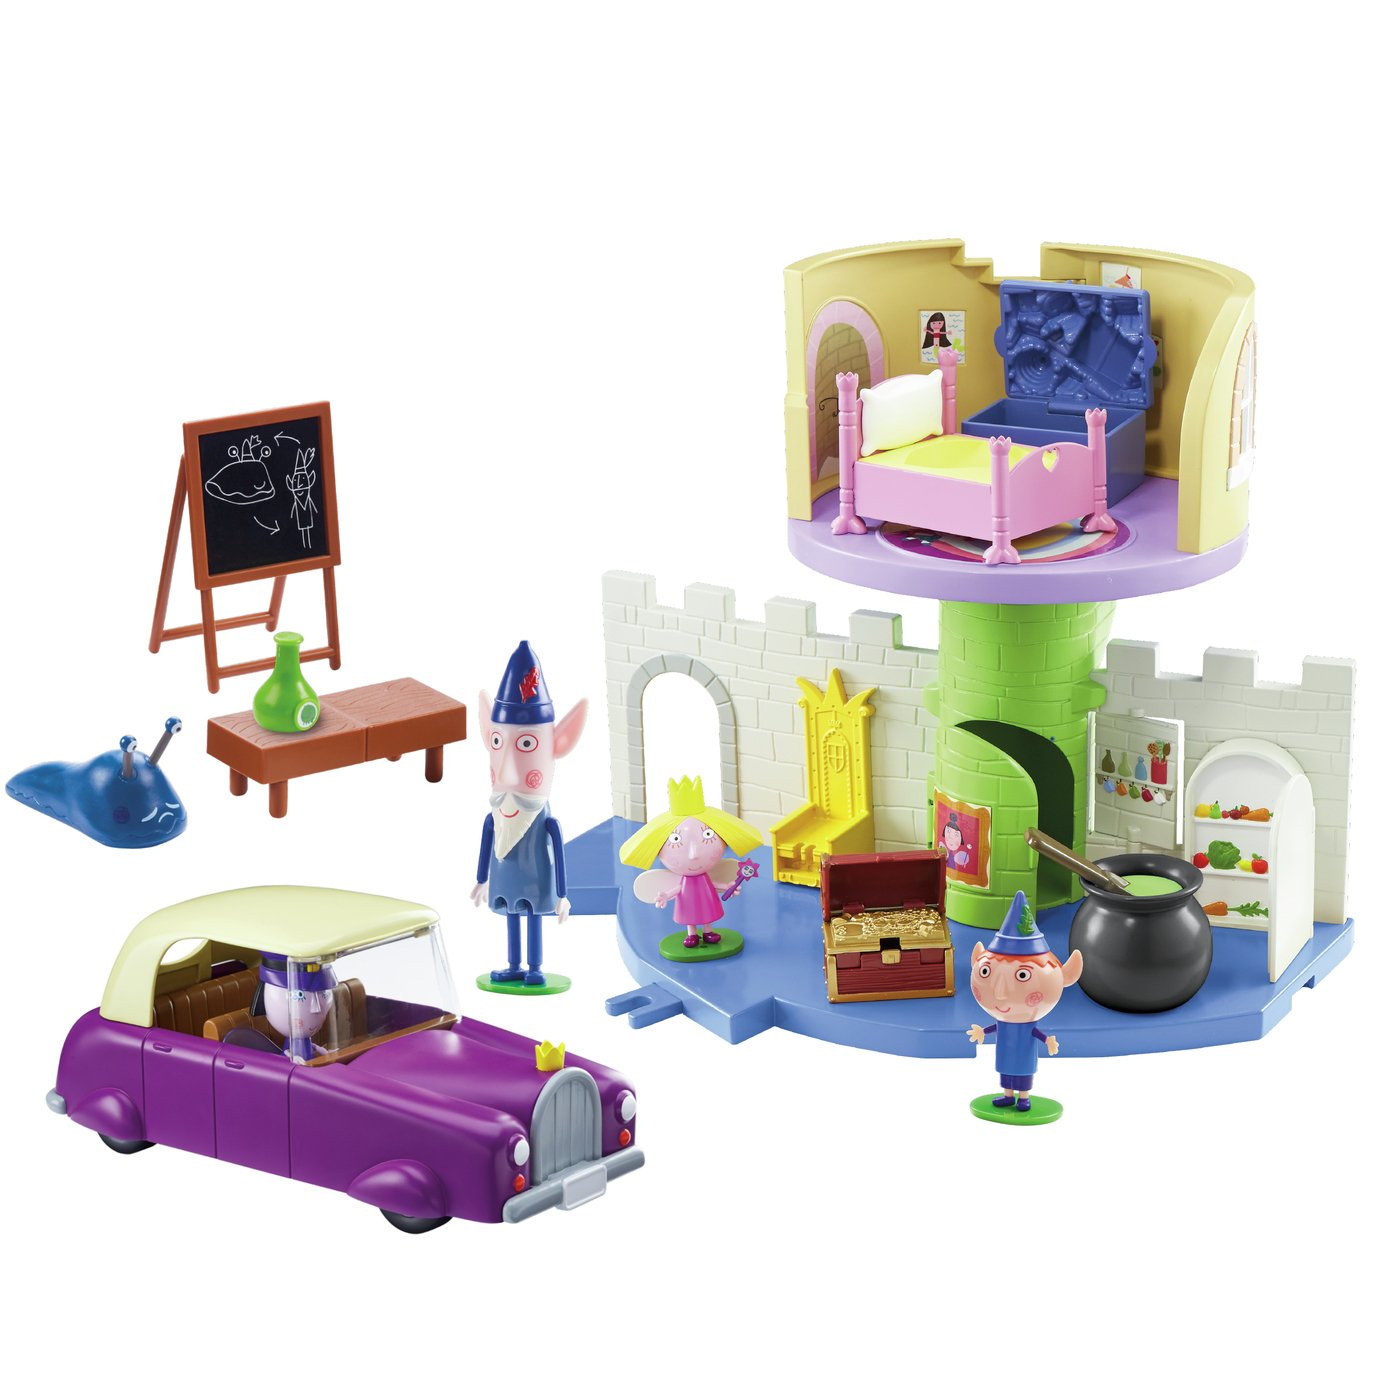 Image of Ben & Holly's Little Kingdom Kingdom Value Playset.